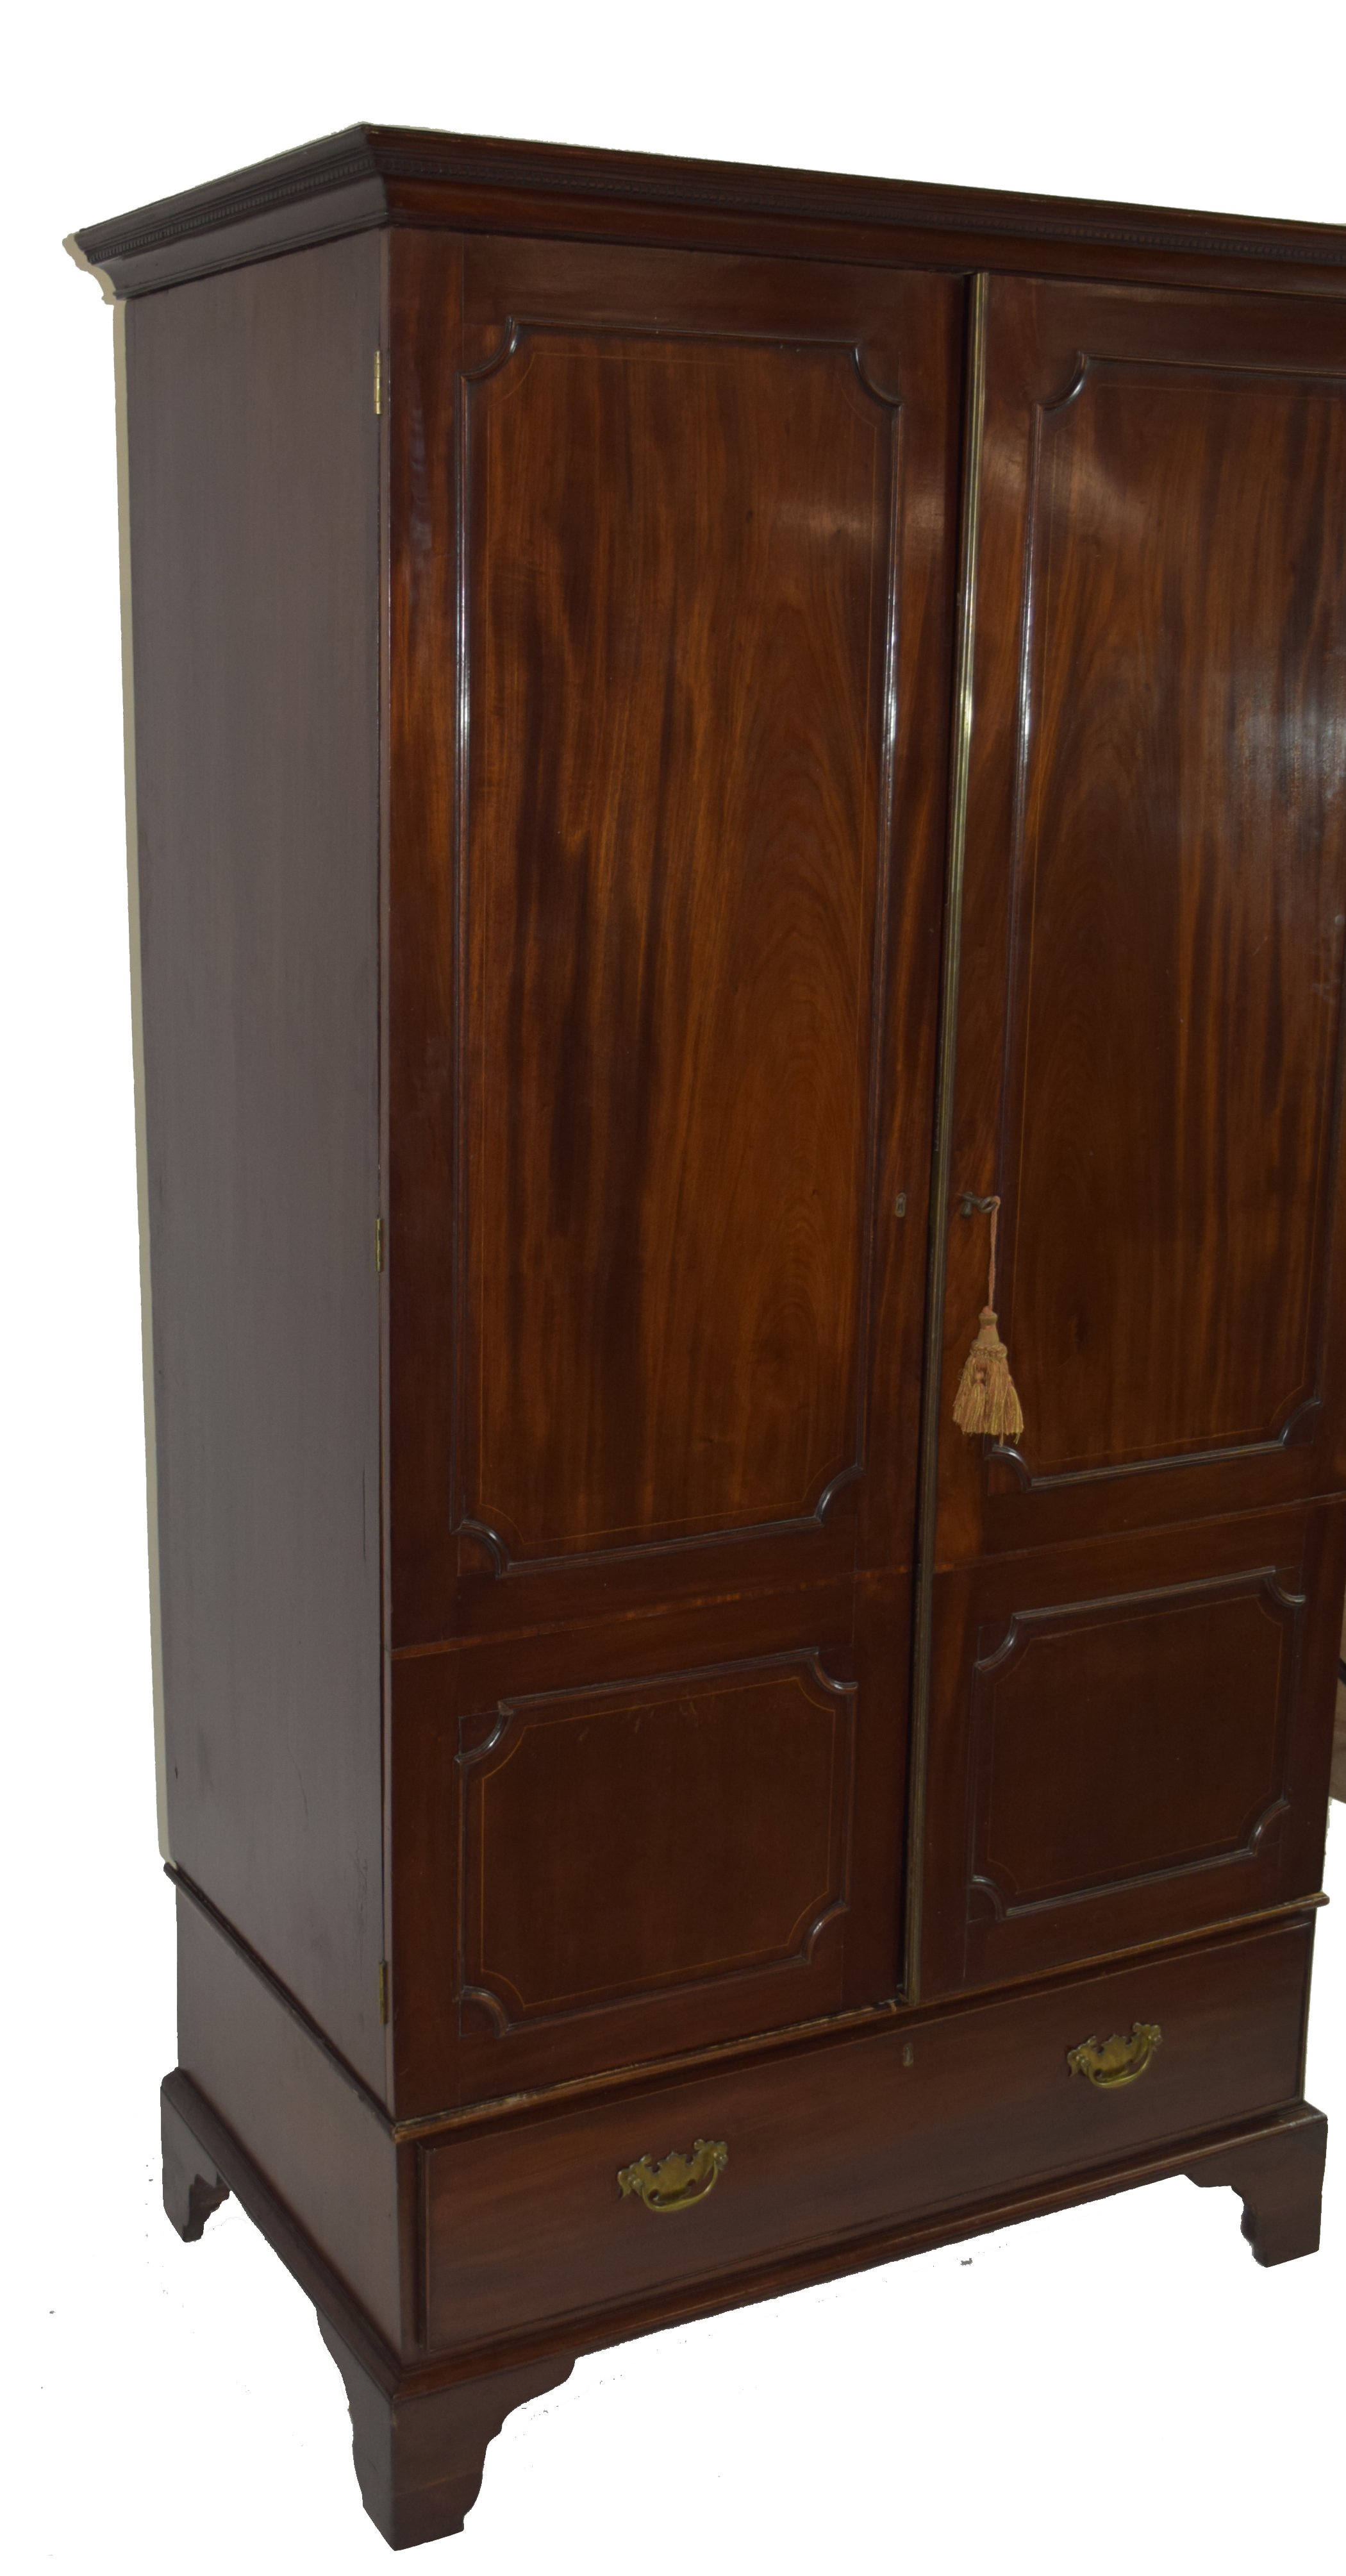 19th century mahogany wardrobe with moulded cornice over two panelled doors and single drawer - Image 3 of 6